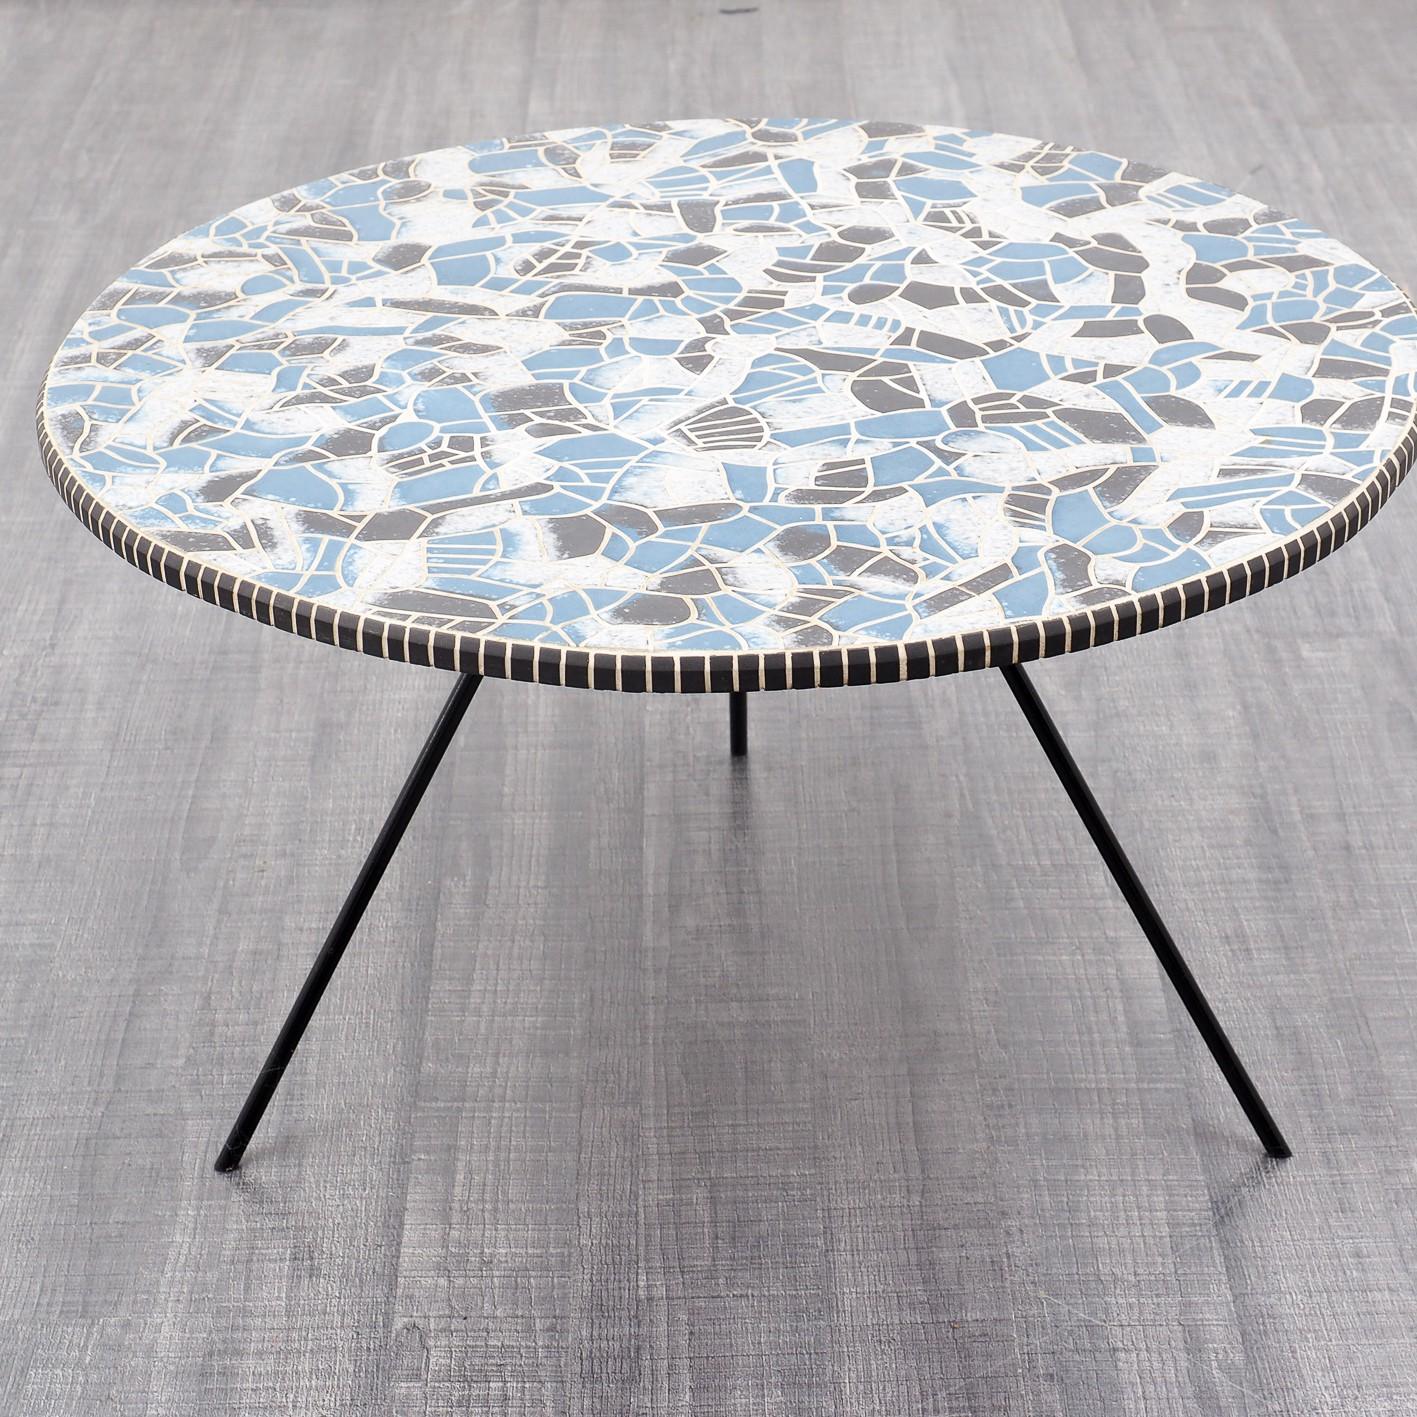 Round Retro Coffee Table: Round Vintage Coffee Table With Blue, Black And Grey